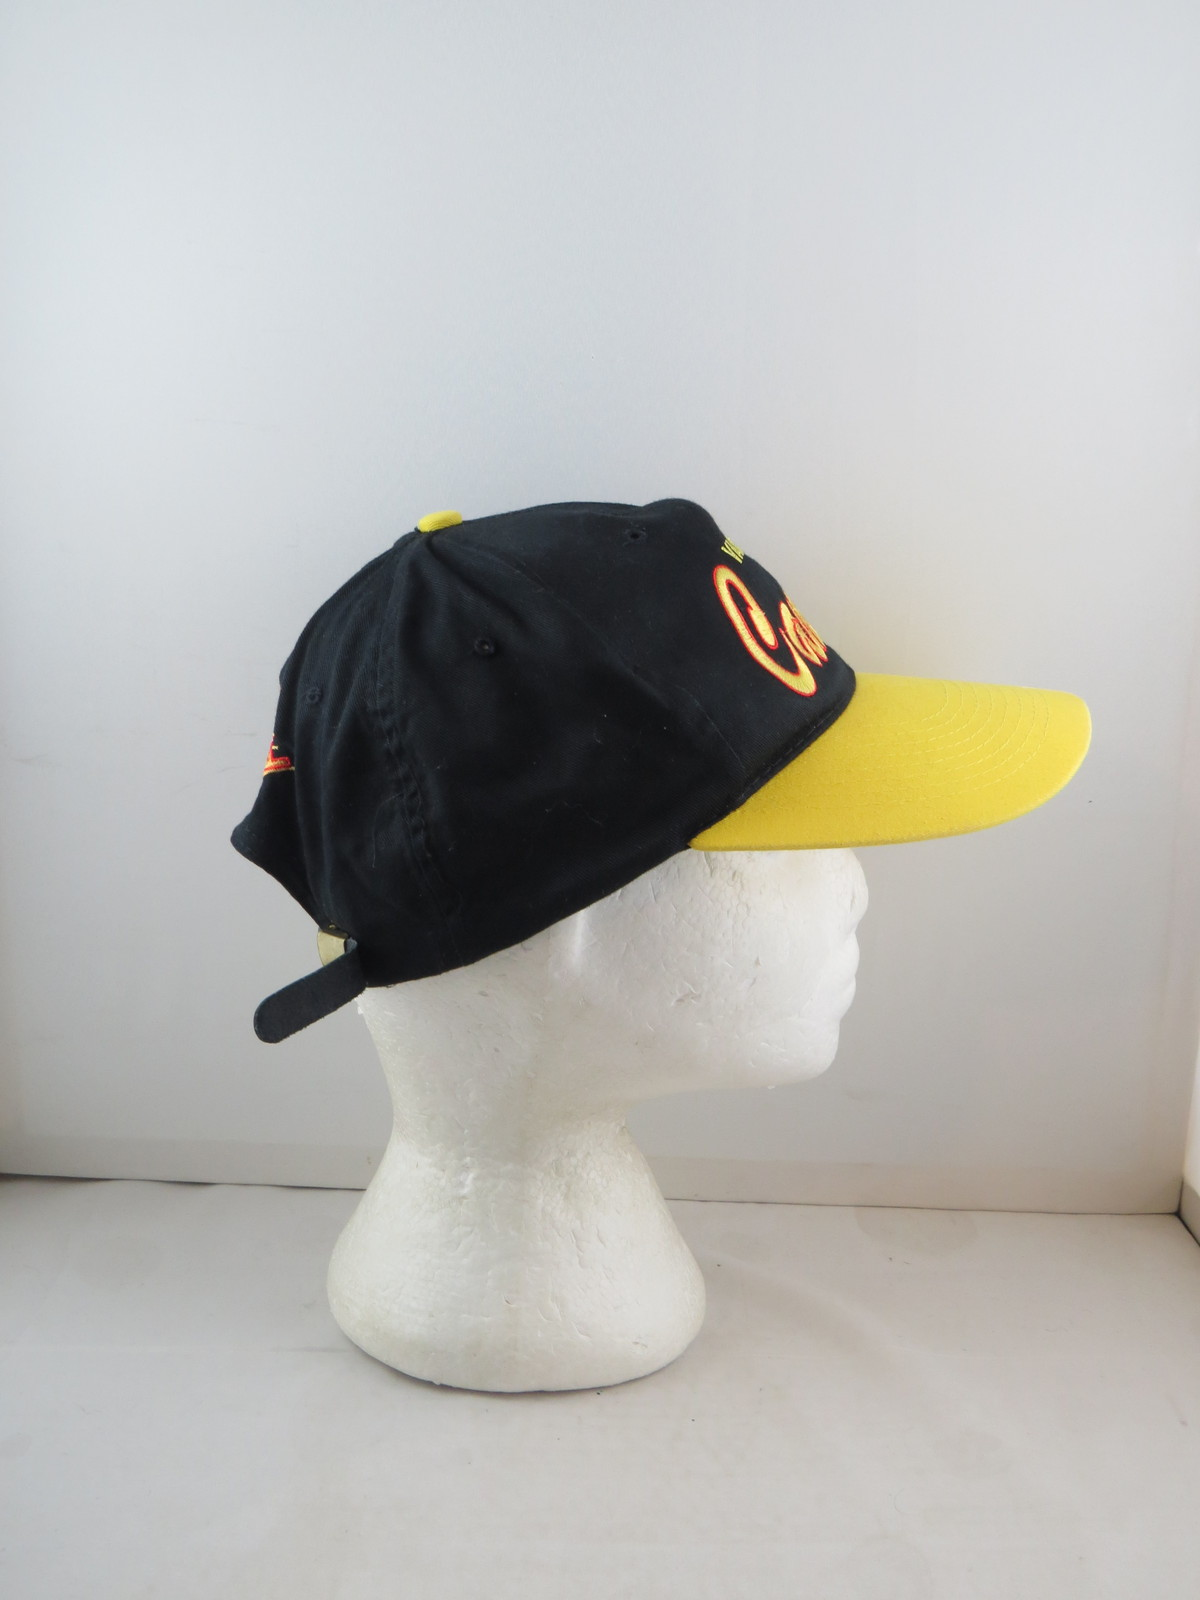 Vancouver Canucks Hat (VTG) - Two Tone Script by Krystal Kaps - Adult Strapback